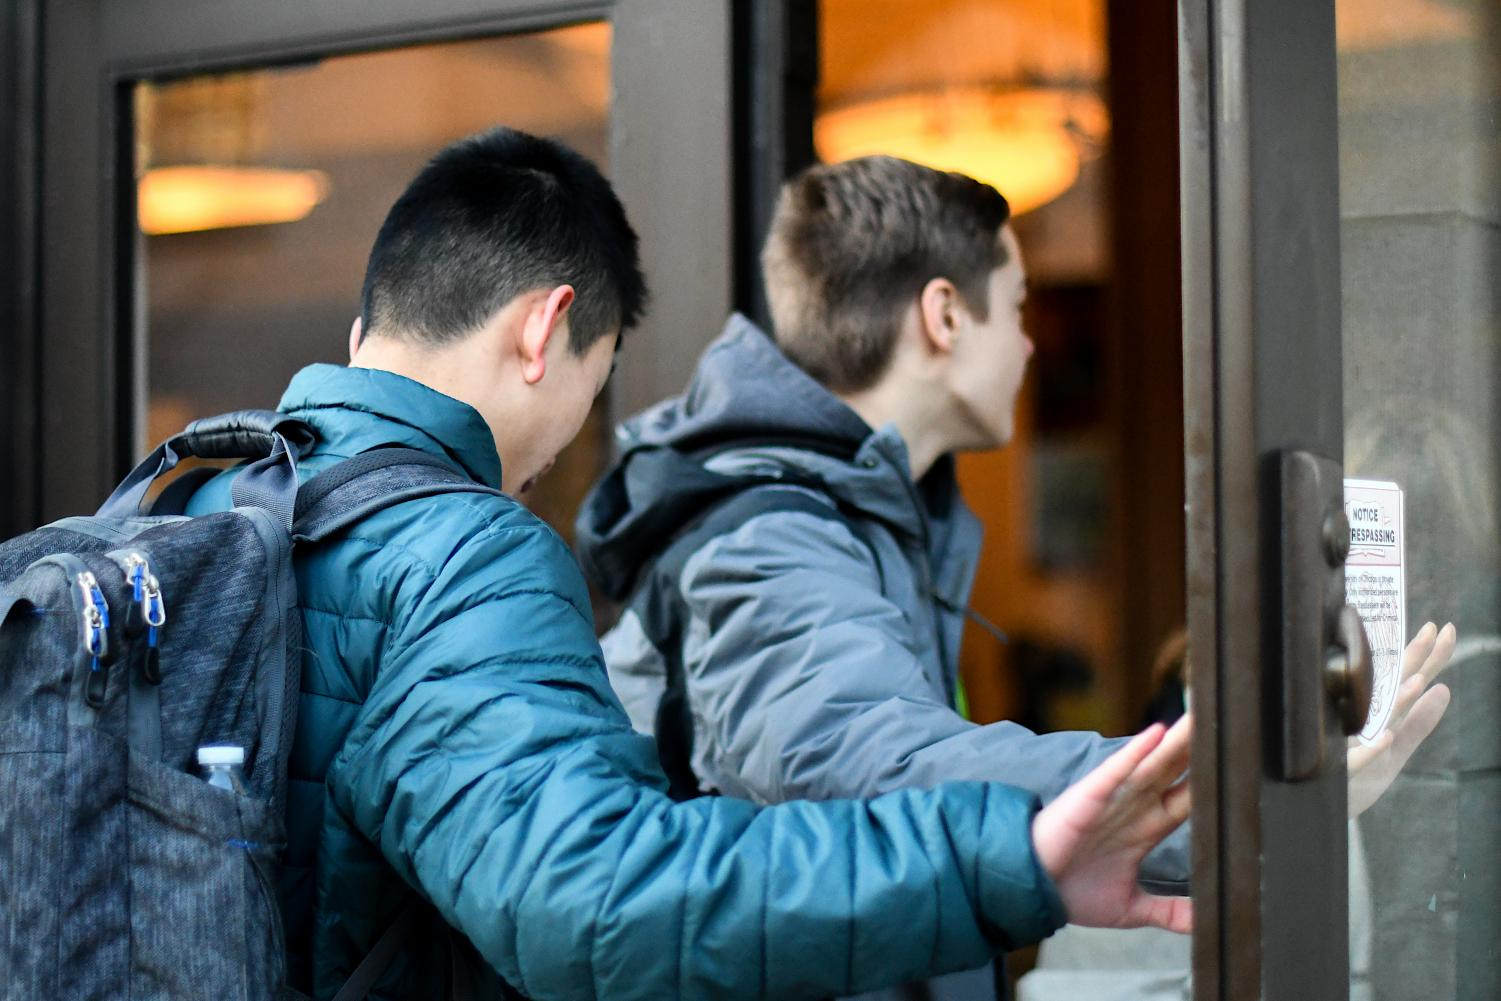 EARLY RISERS. Students walk into school 7:50 a.m., ten minutes before class. Many struggle with lack of sleep due to a heavy workload and packed schedule. For some, an 8 a.m. start plus a commute means waking up before sunrise each day.